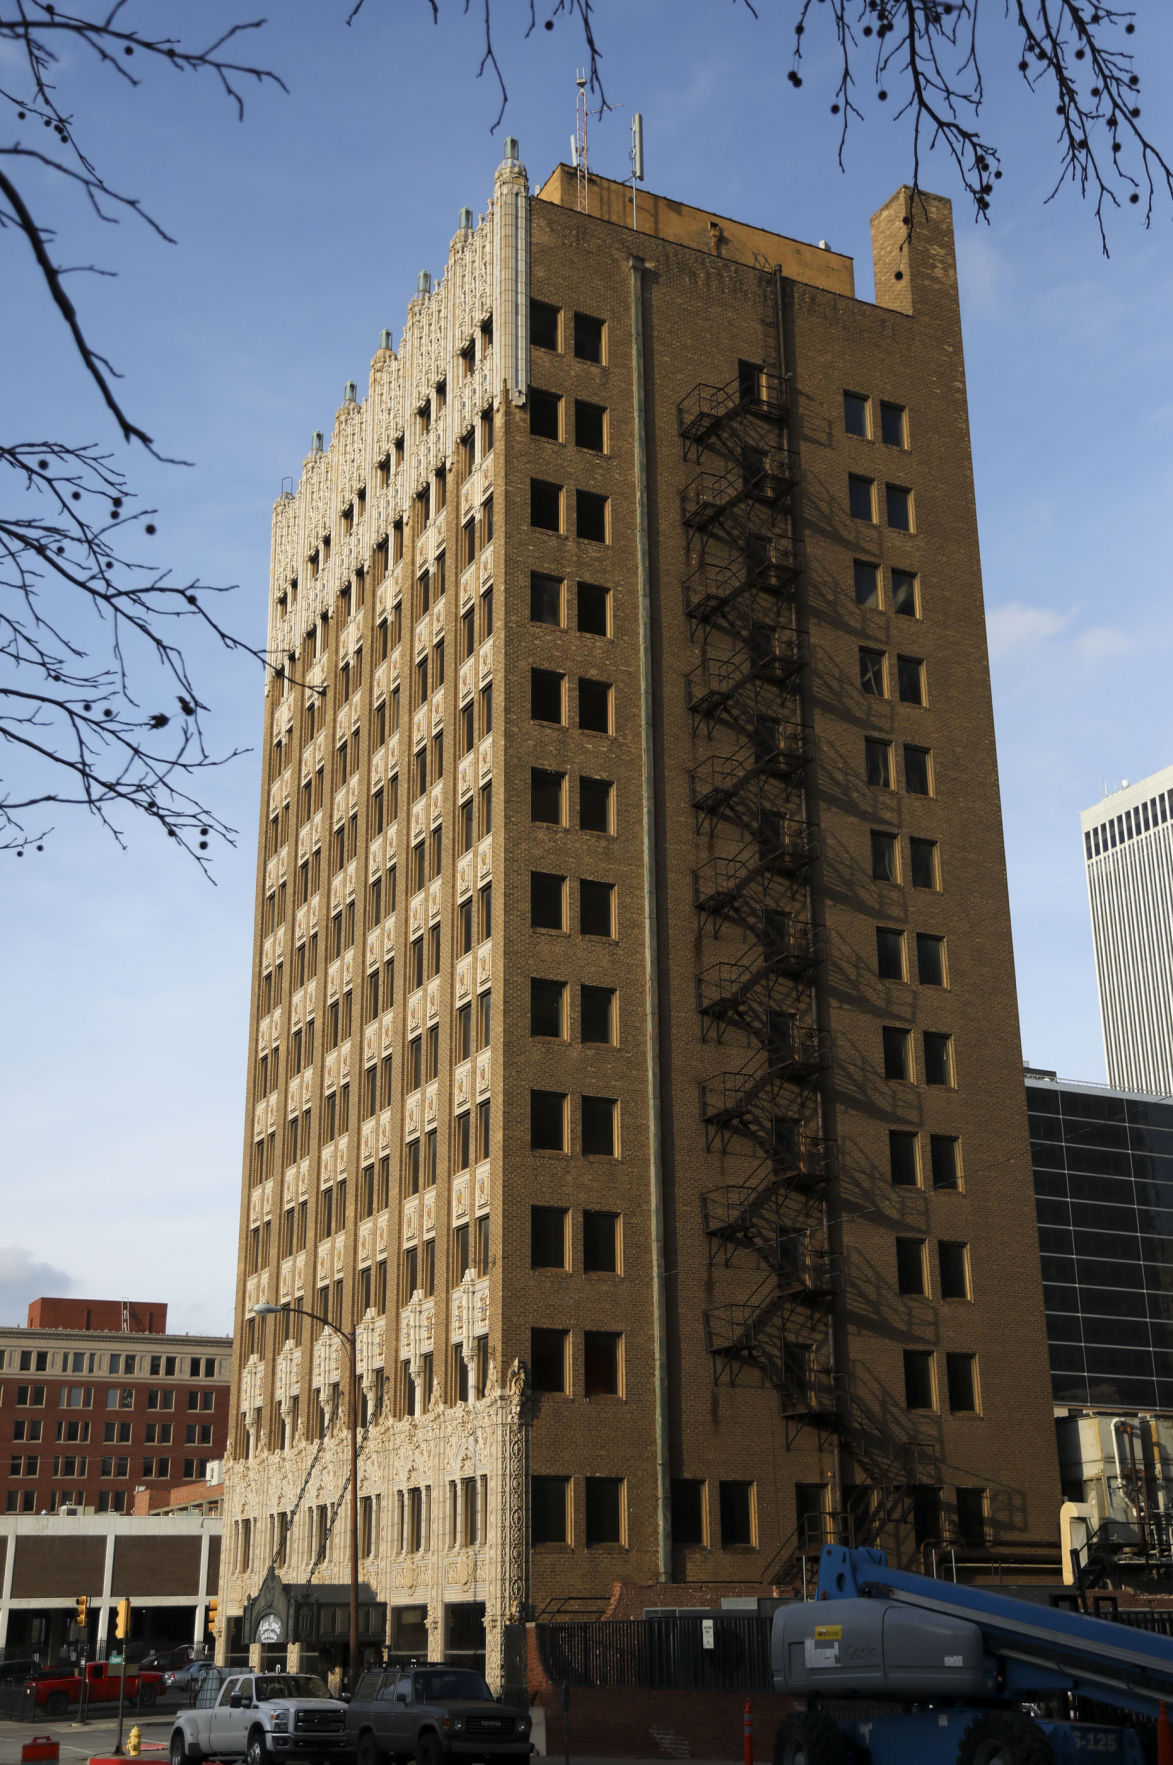 The Adams Building On Corner Of Fourth Street And Cheyenne Avenue In Downtown Tulsa Is Being Redeveloped Into 60 Residential Units With Retail